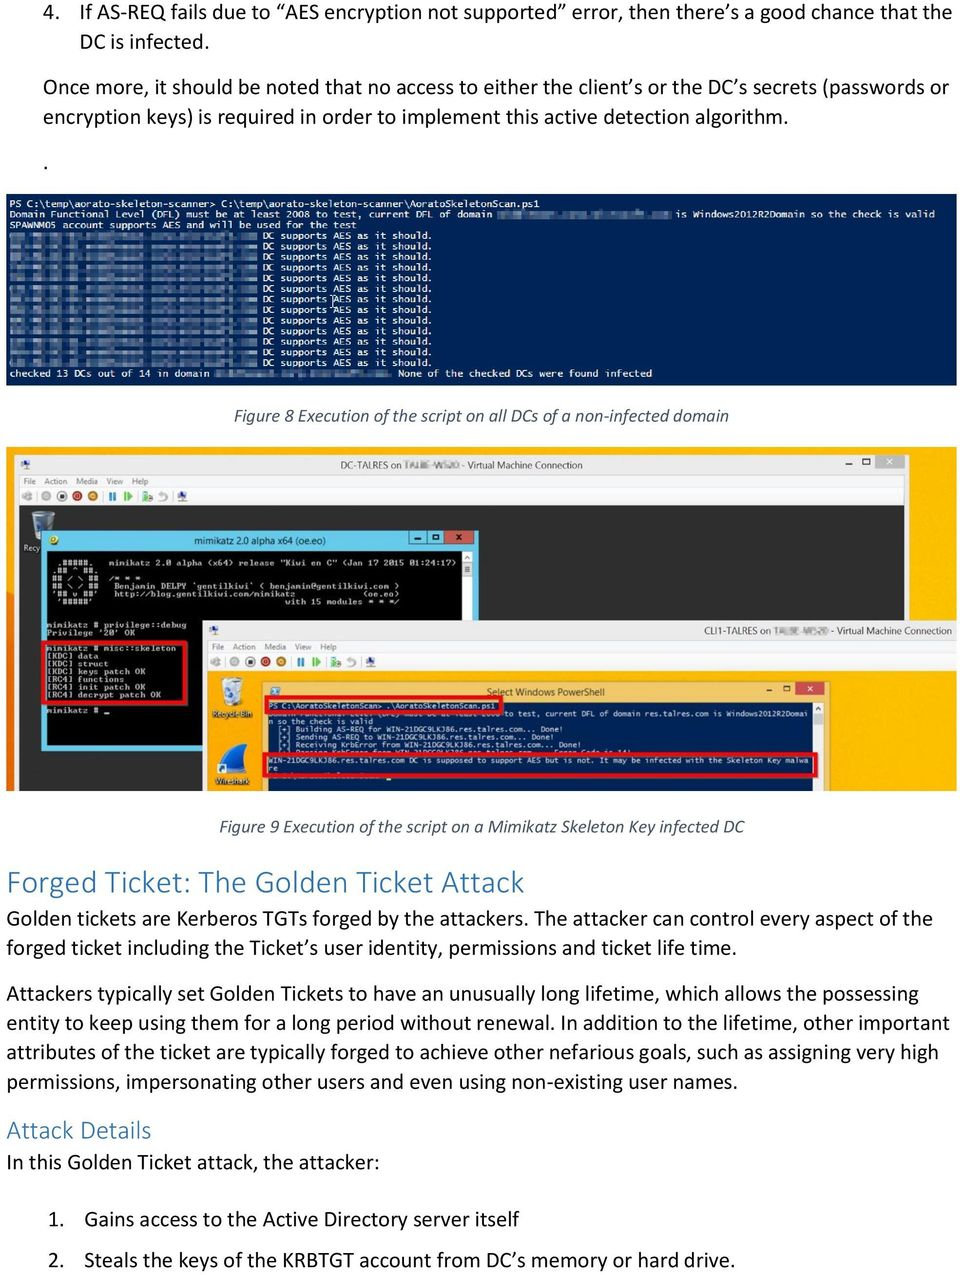 . Figure 8 Execution of the script on all DCs of a non-infected domain Figure 9 Execution of the script on a Mimikatz Skeleton Key infected DC Forged Ticket: The Golden Ticket Attack Golden tickets